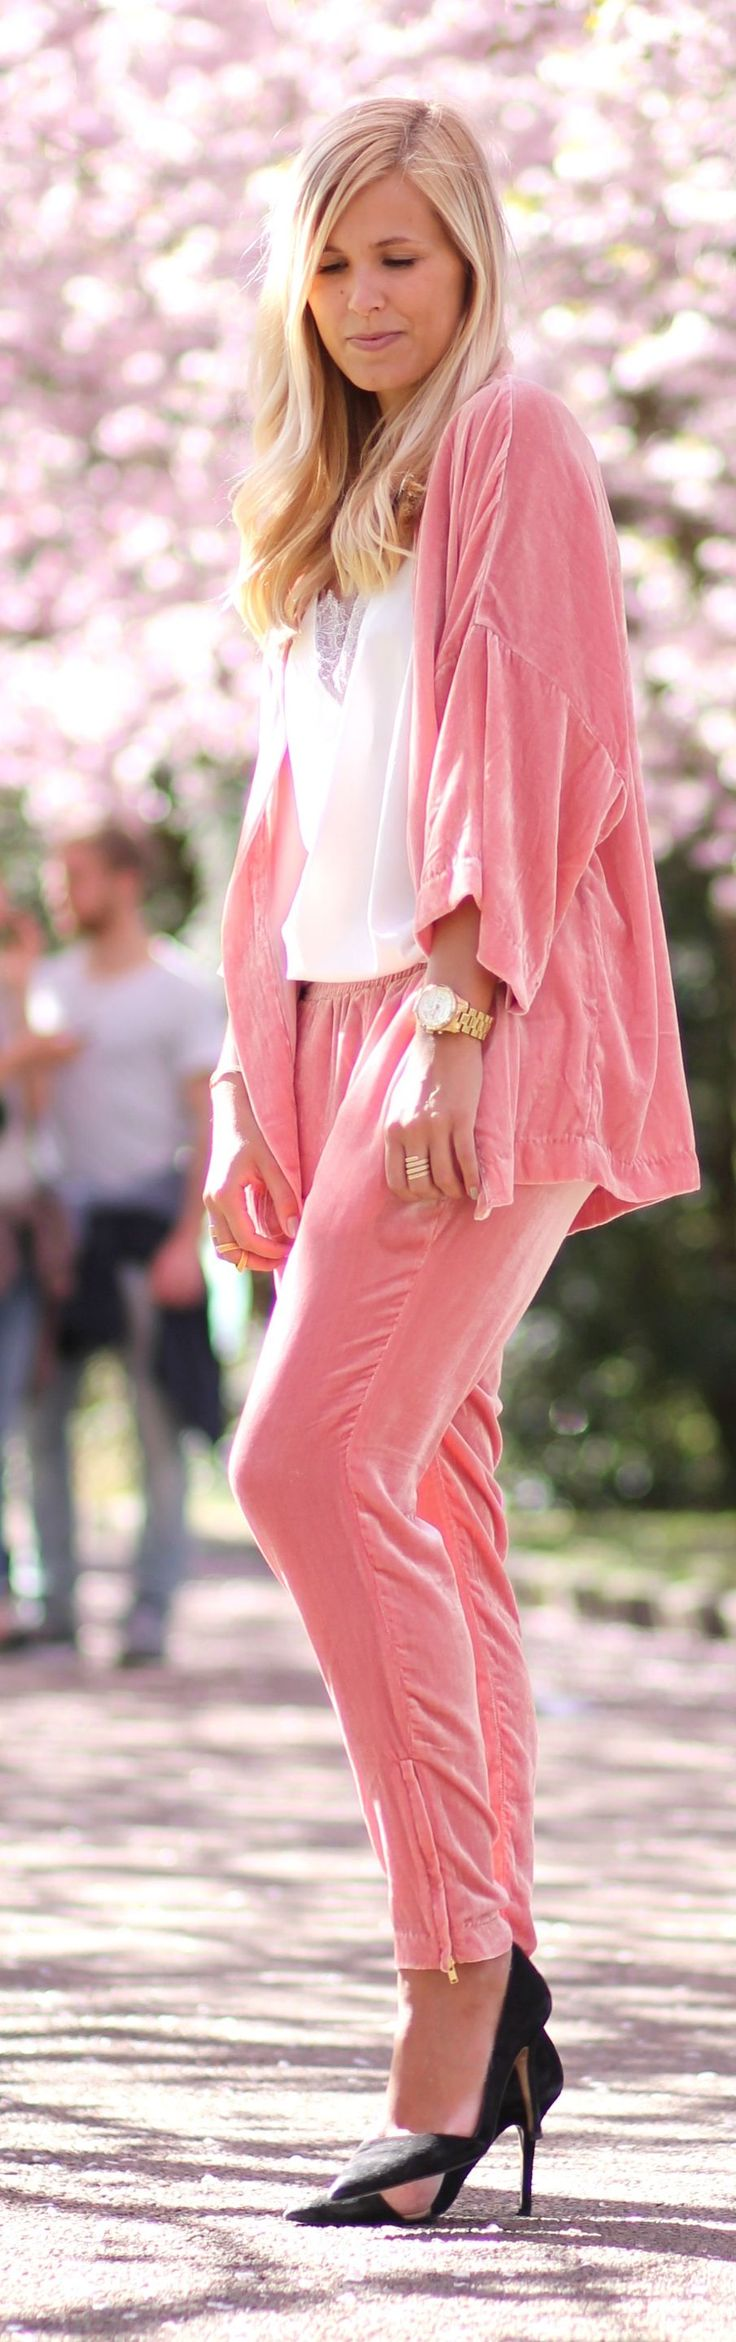 Pink Velvet Suit Outfit Idea by Natulia